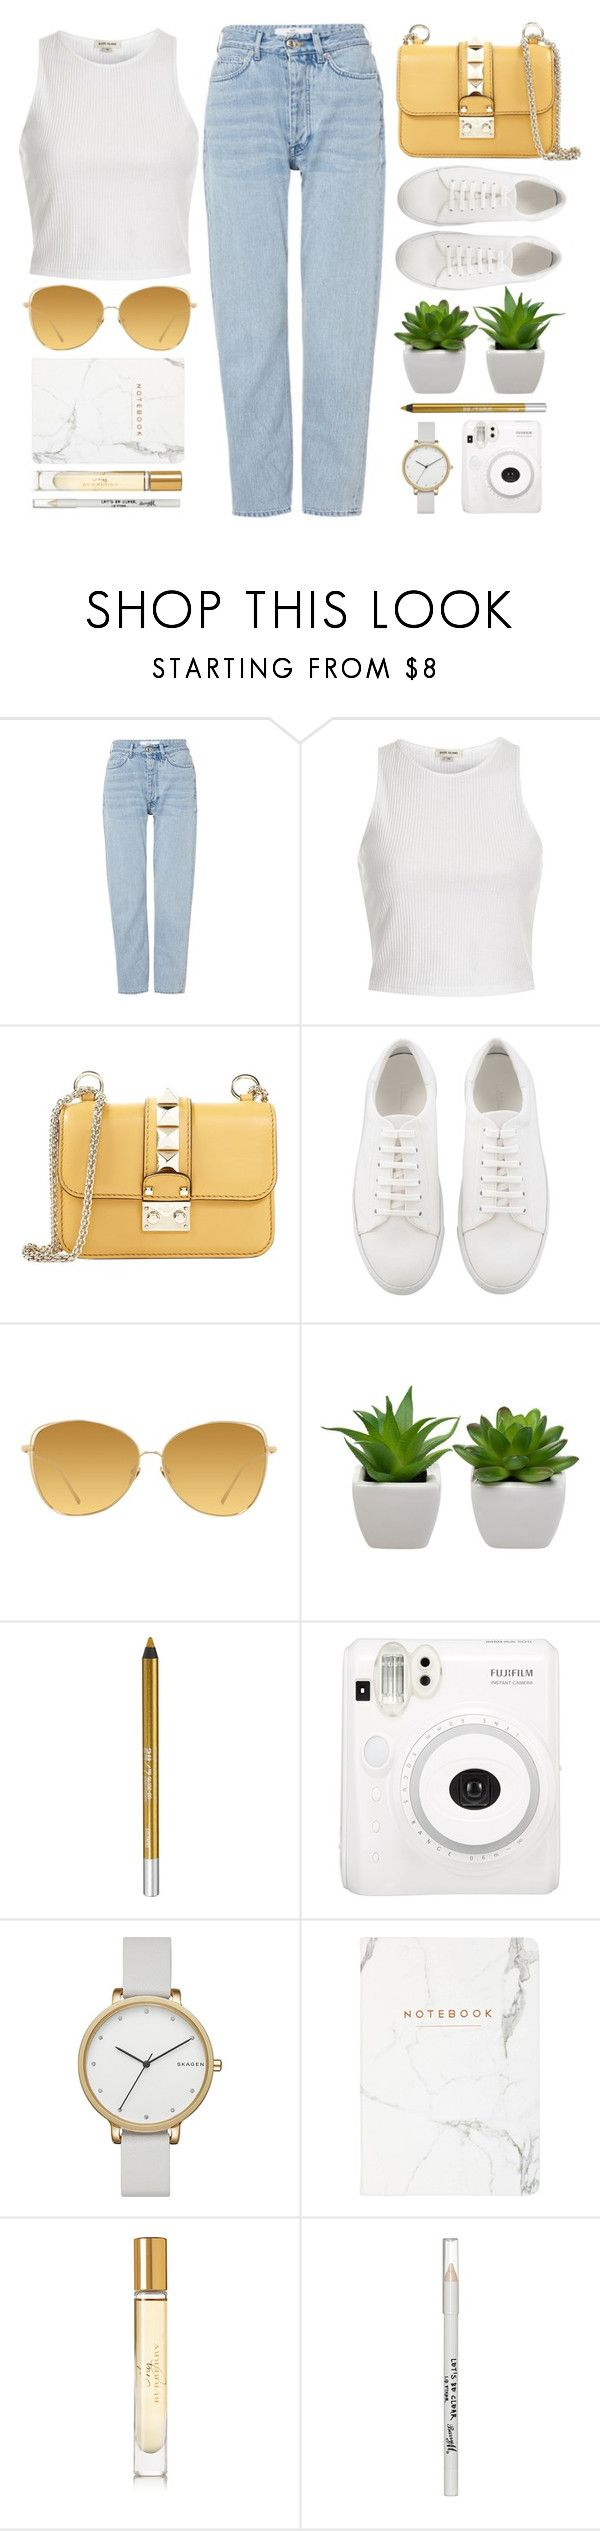 """""""Villach"""" by monmondefou ❤ liked on Polyvore featuring Won Hundred, River Island, Valentino, Linda Farrow, Urban Decay, Skagen, Burberry, Barry M, white and yellow"""